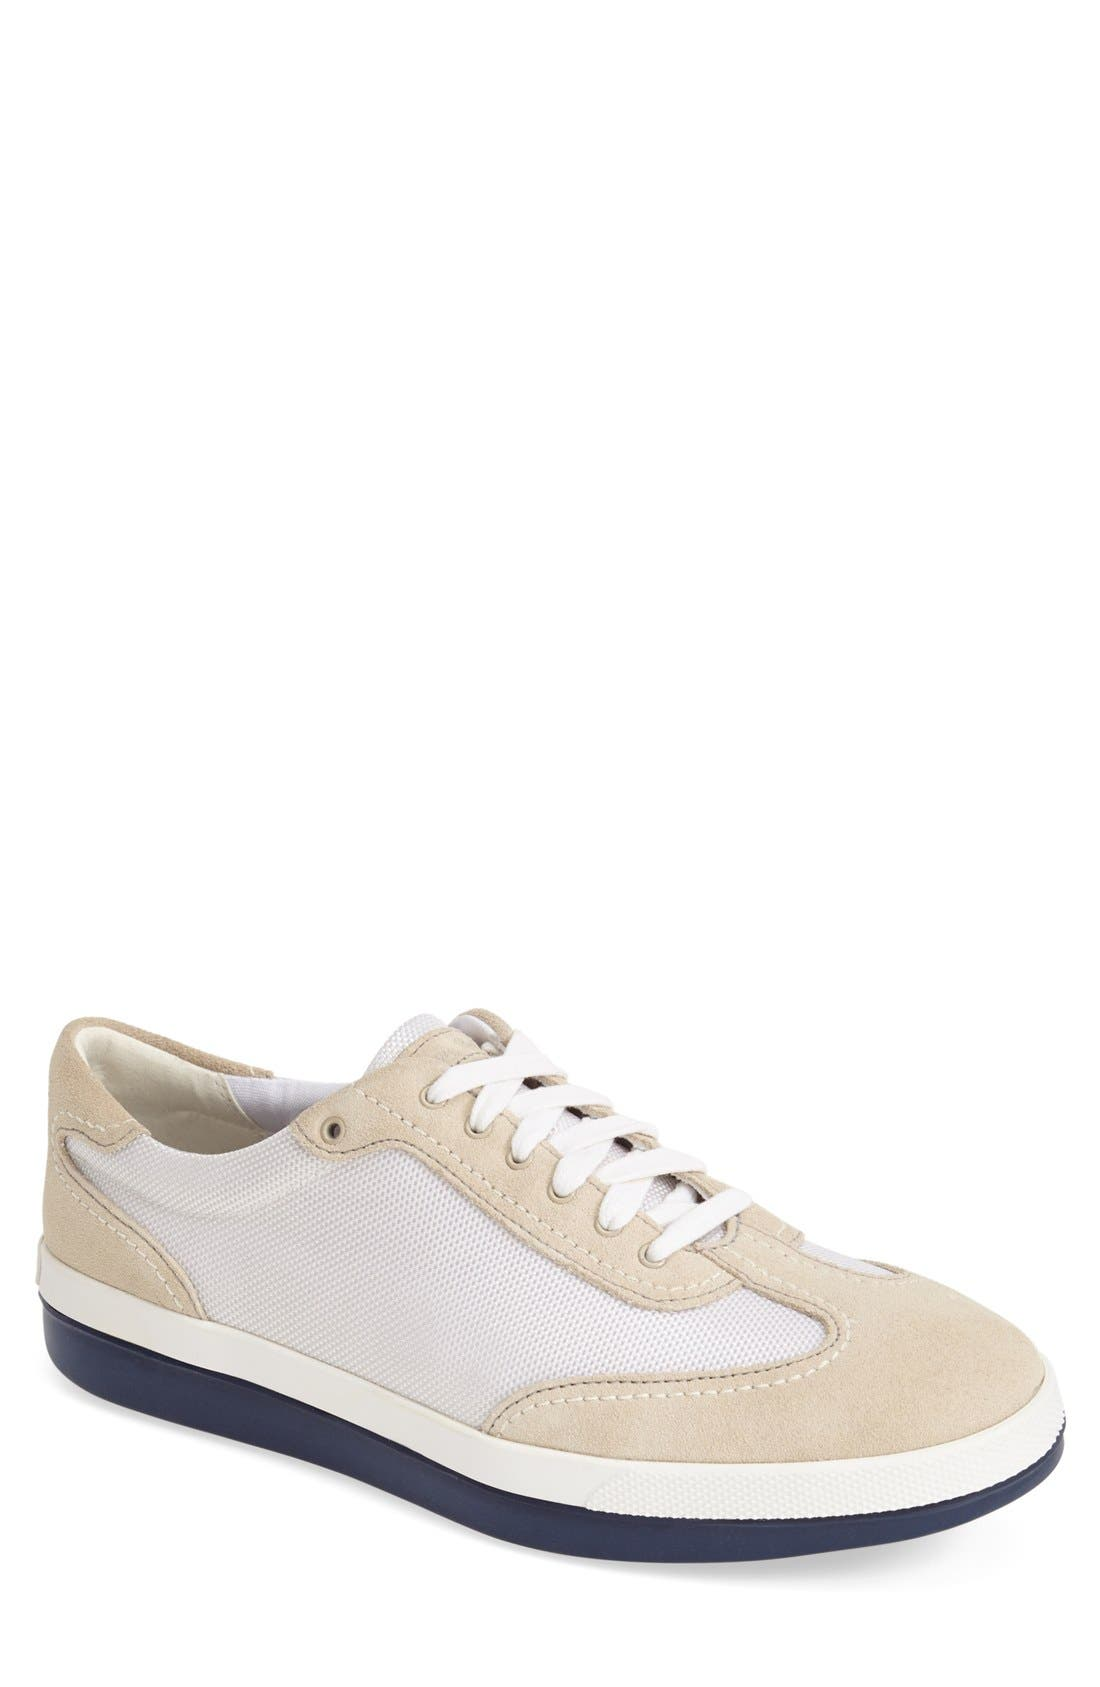 TOMMY BAHAMA,                             'Relaxology Collection - Roaderick' Sneaker,                             Main thumbnail 1, color,                             100